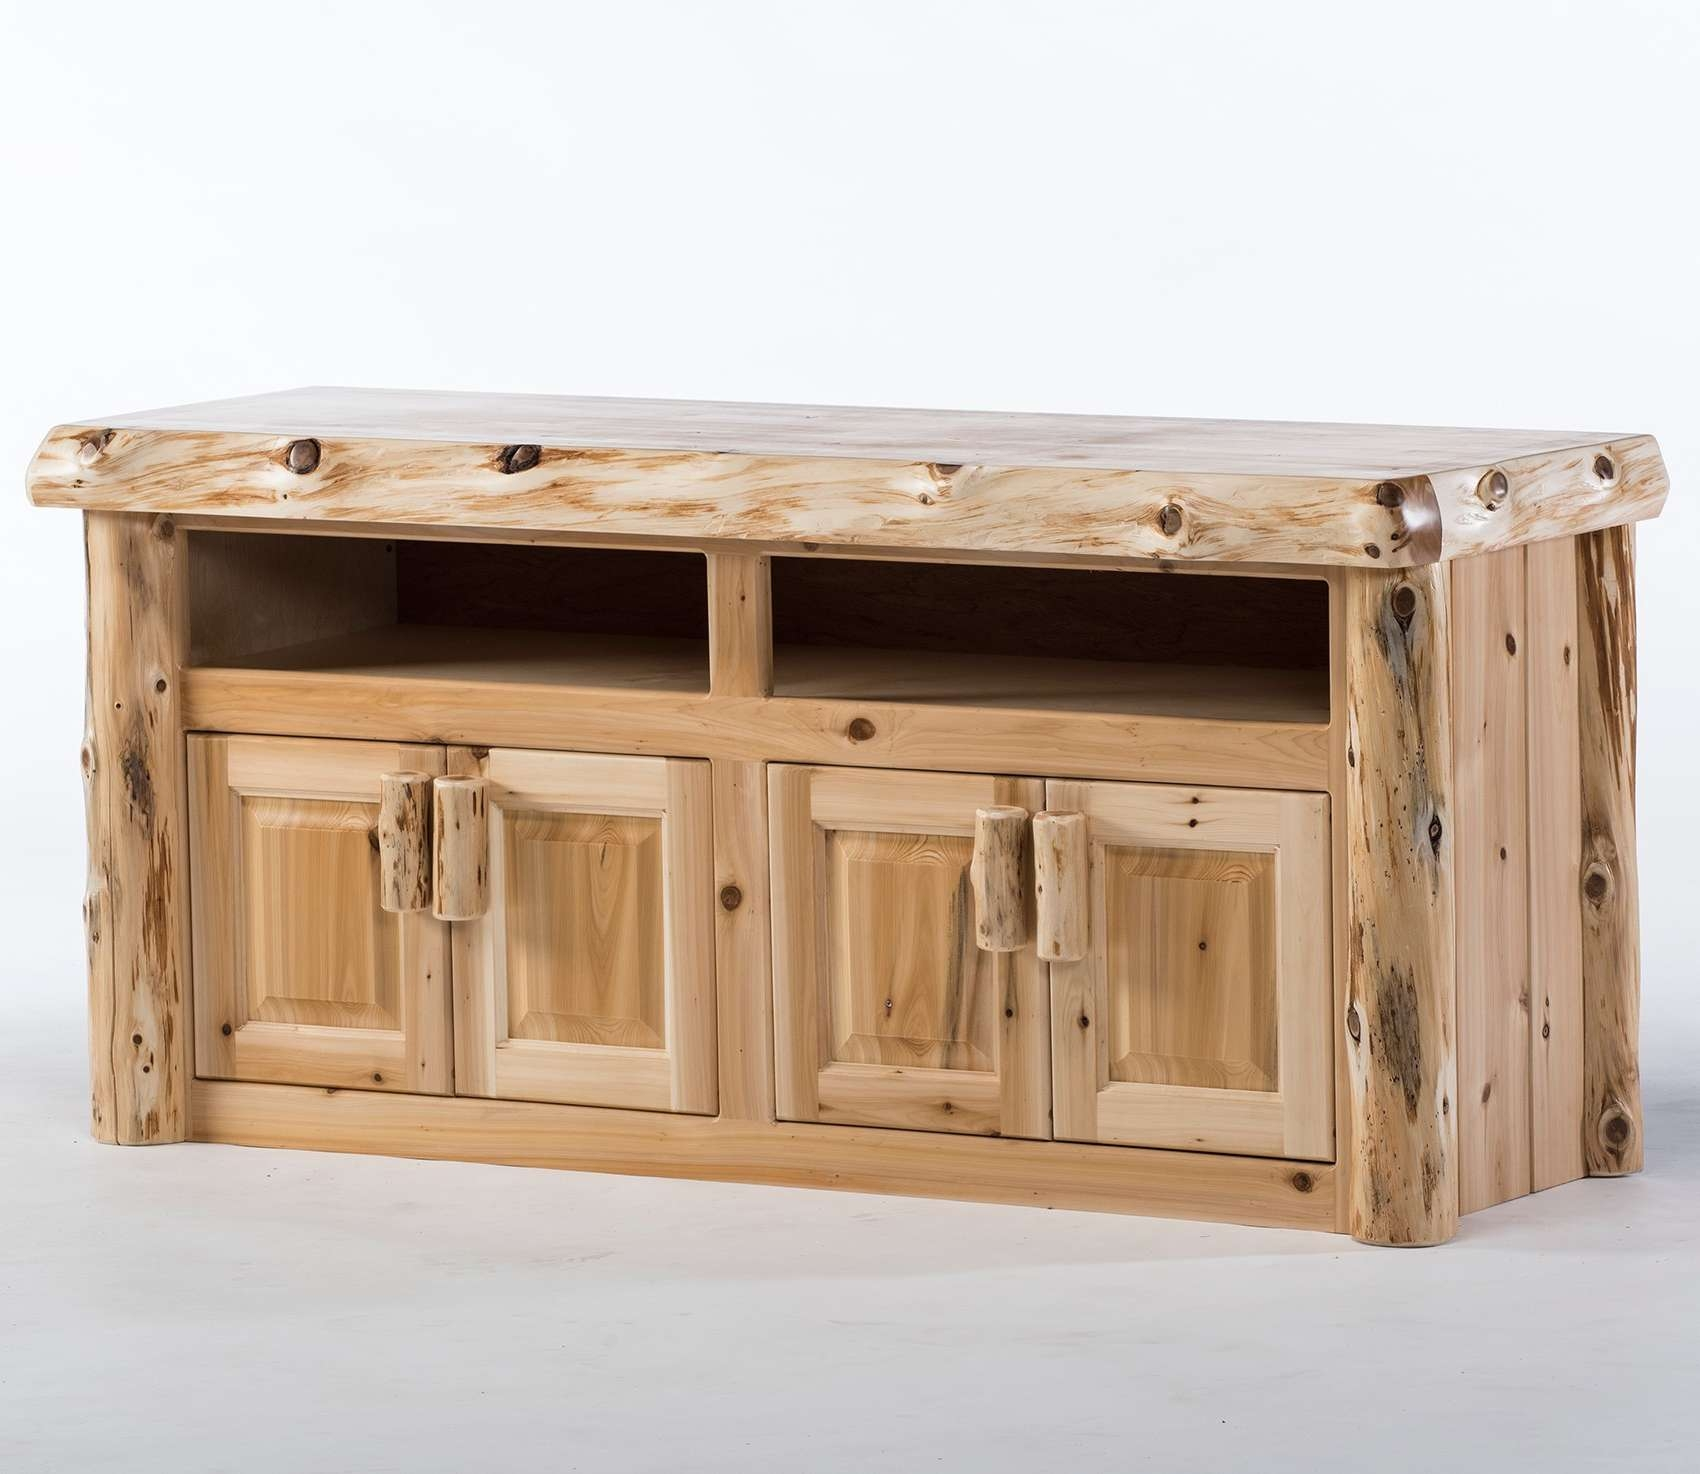 Reclaimed Wood Tv Stands & Rustic Tv Stands: Log Tv Stand & Rustic Inside Rustic Wood Tv Cabinets (View 18 of 20)